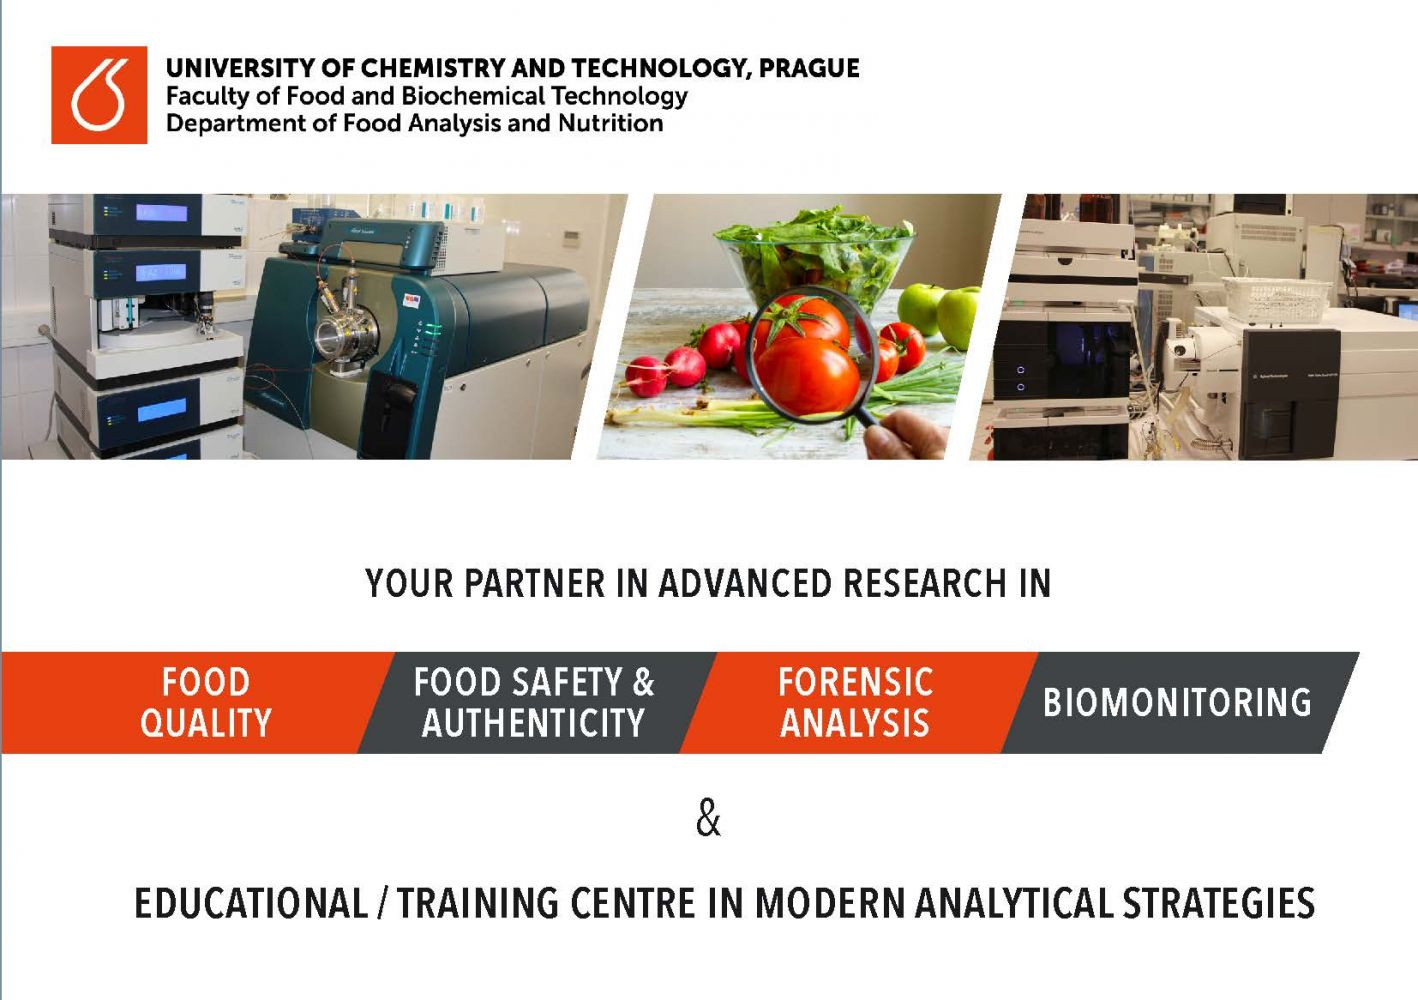 Department of Food Analysis and Nutrition - Department of